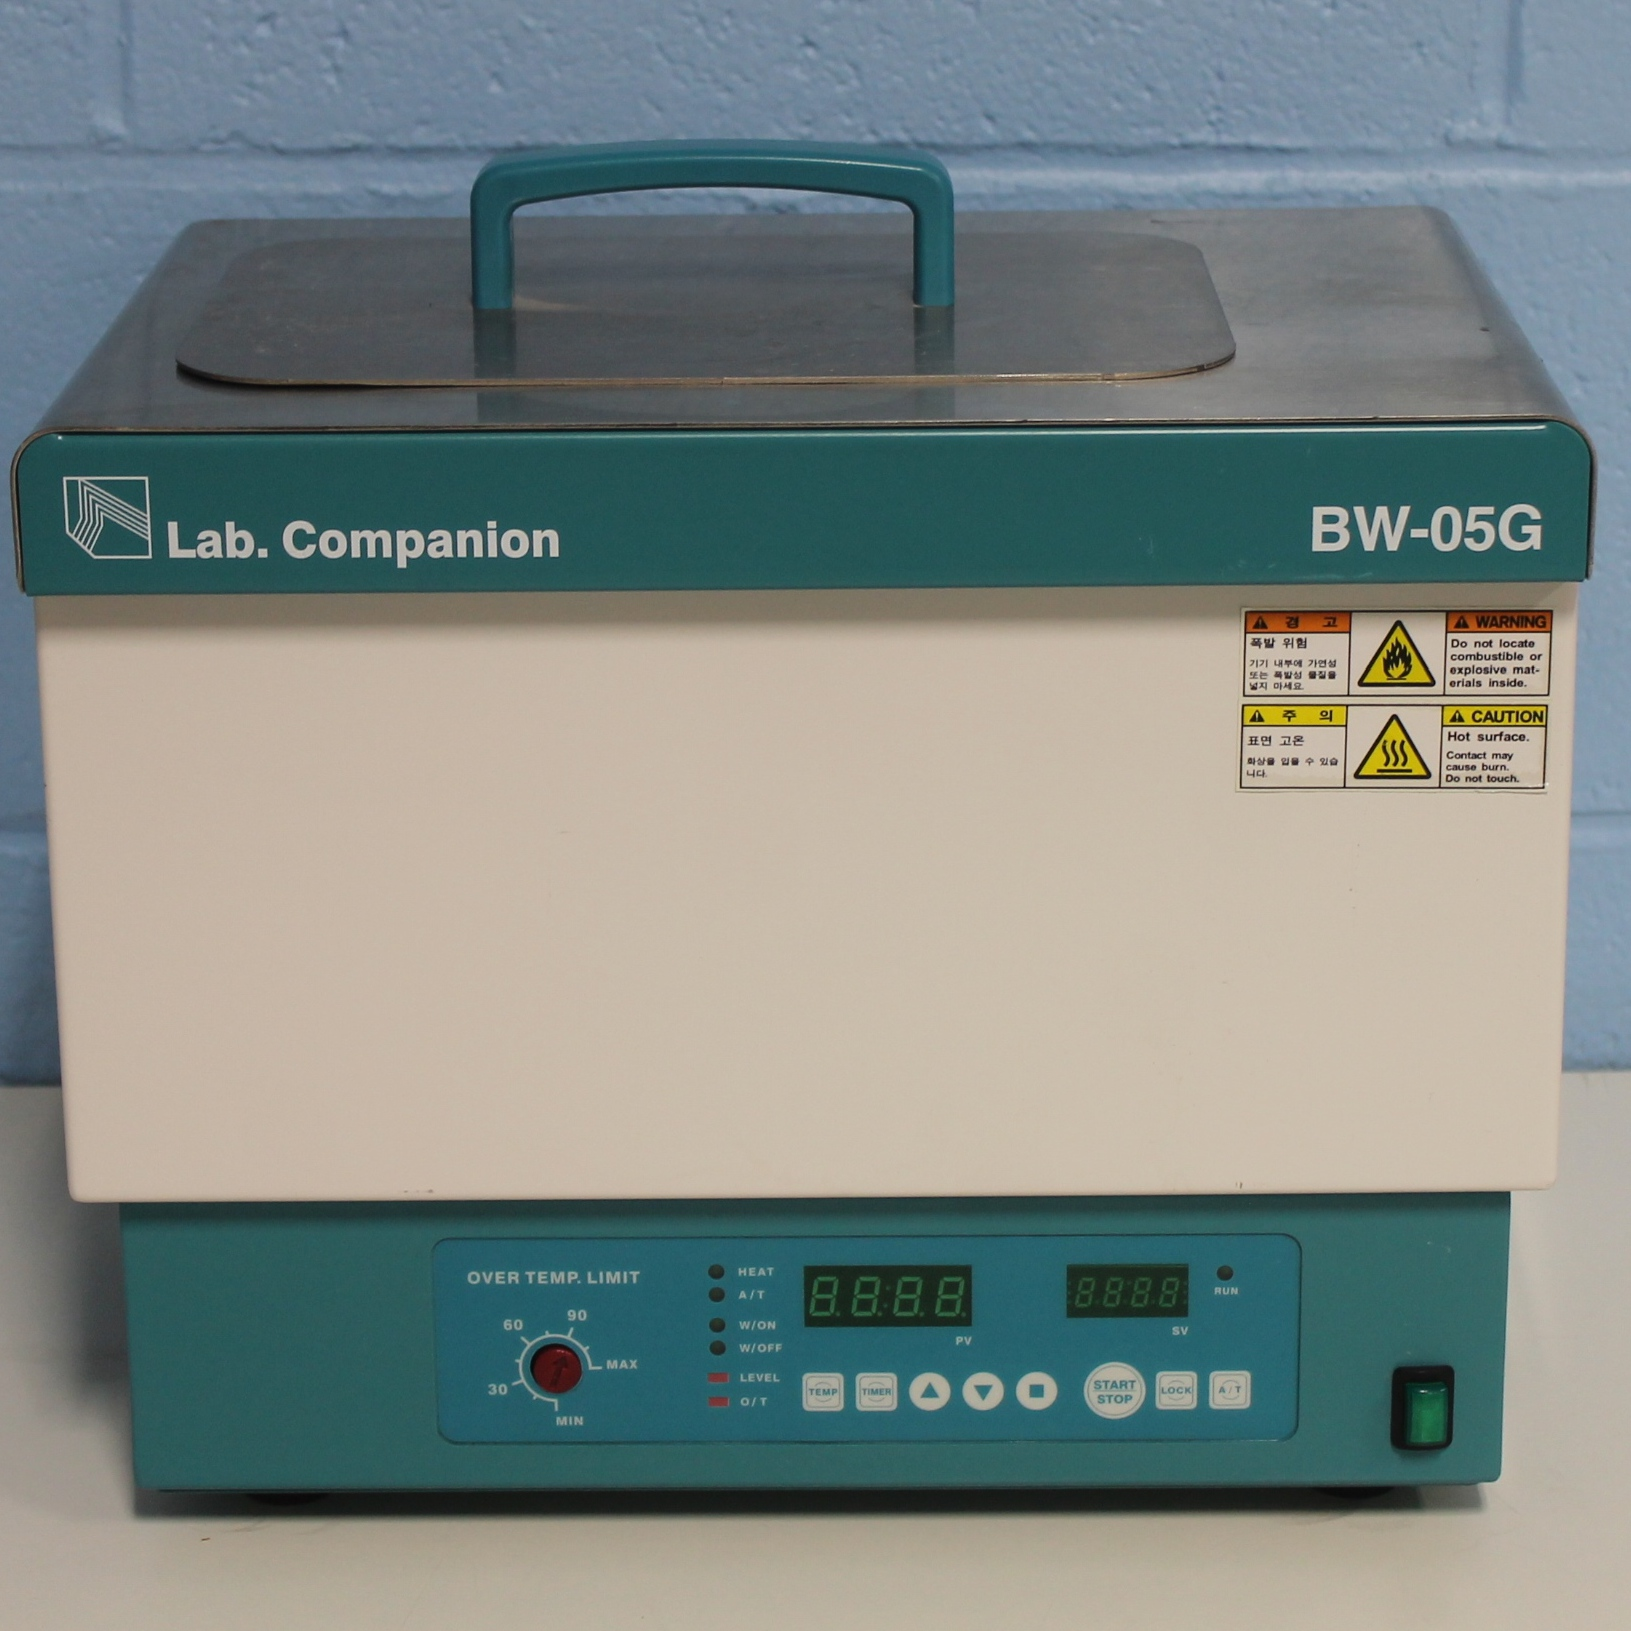 Lab Companion BW-05G 5 liter Heating Bath Image